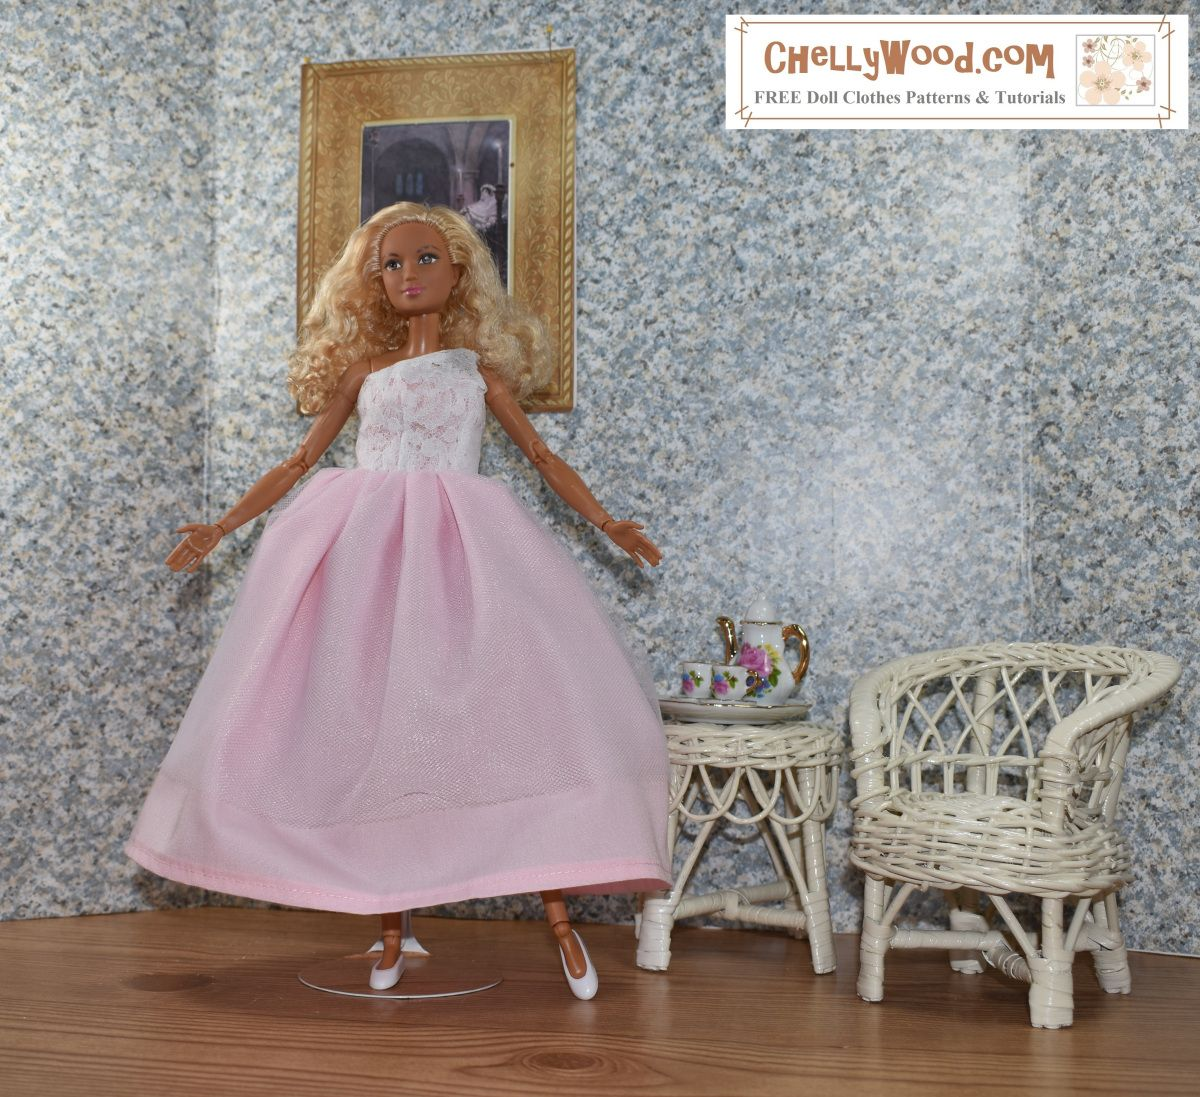 Visit chellywood for free printable sewing patterns for dolls visit chellywood for free printable sewing patterns for dolls of many shapes and sizes here we see made to move barbie wearing a handmade one shoulder jeuxipadfo Gallery